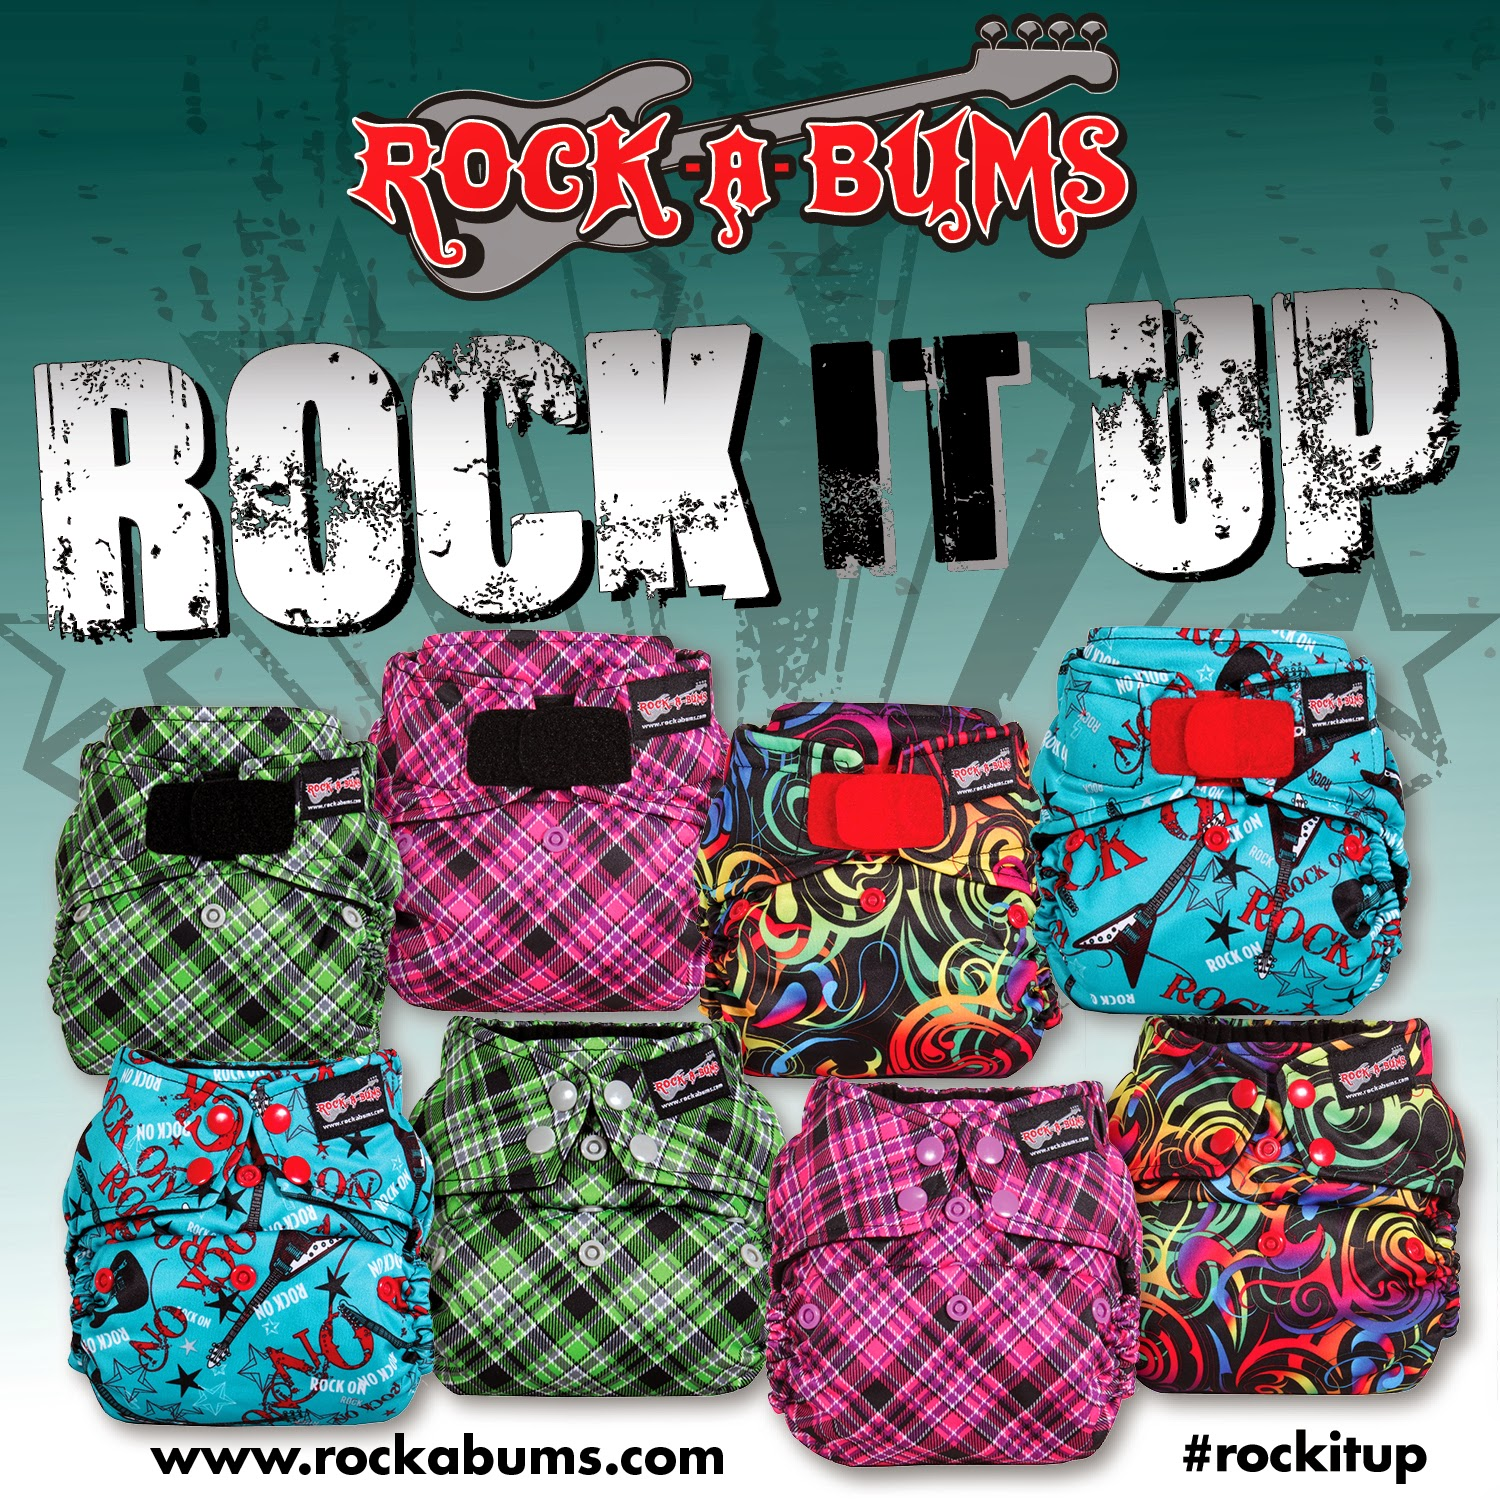 rock-a-bums cloth diapers giveaway